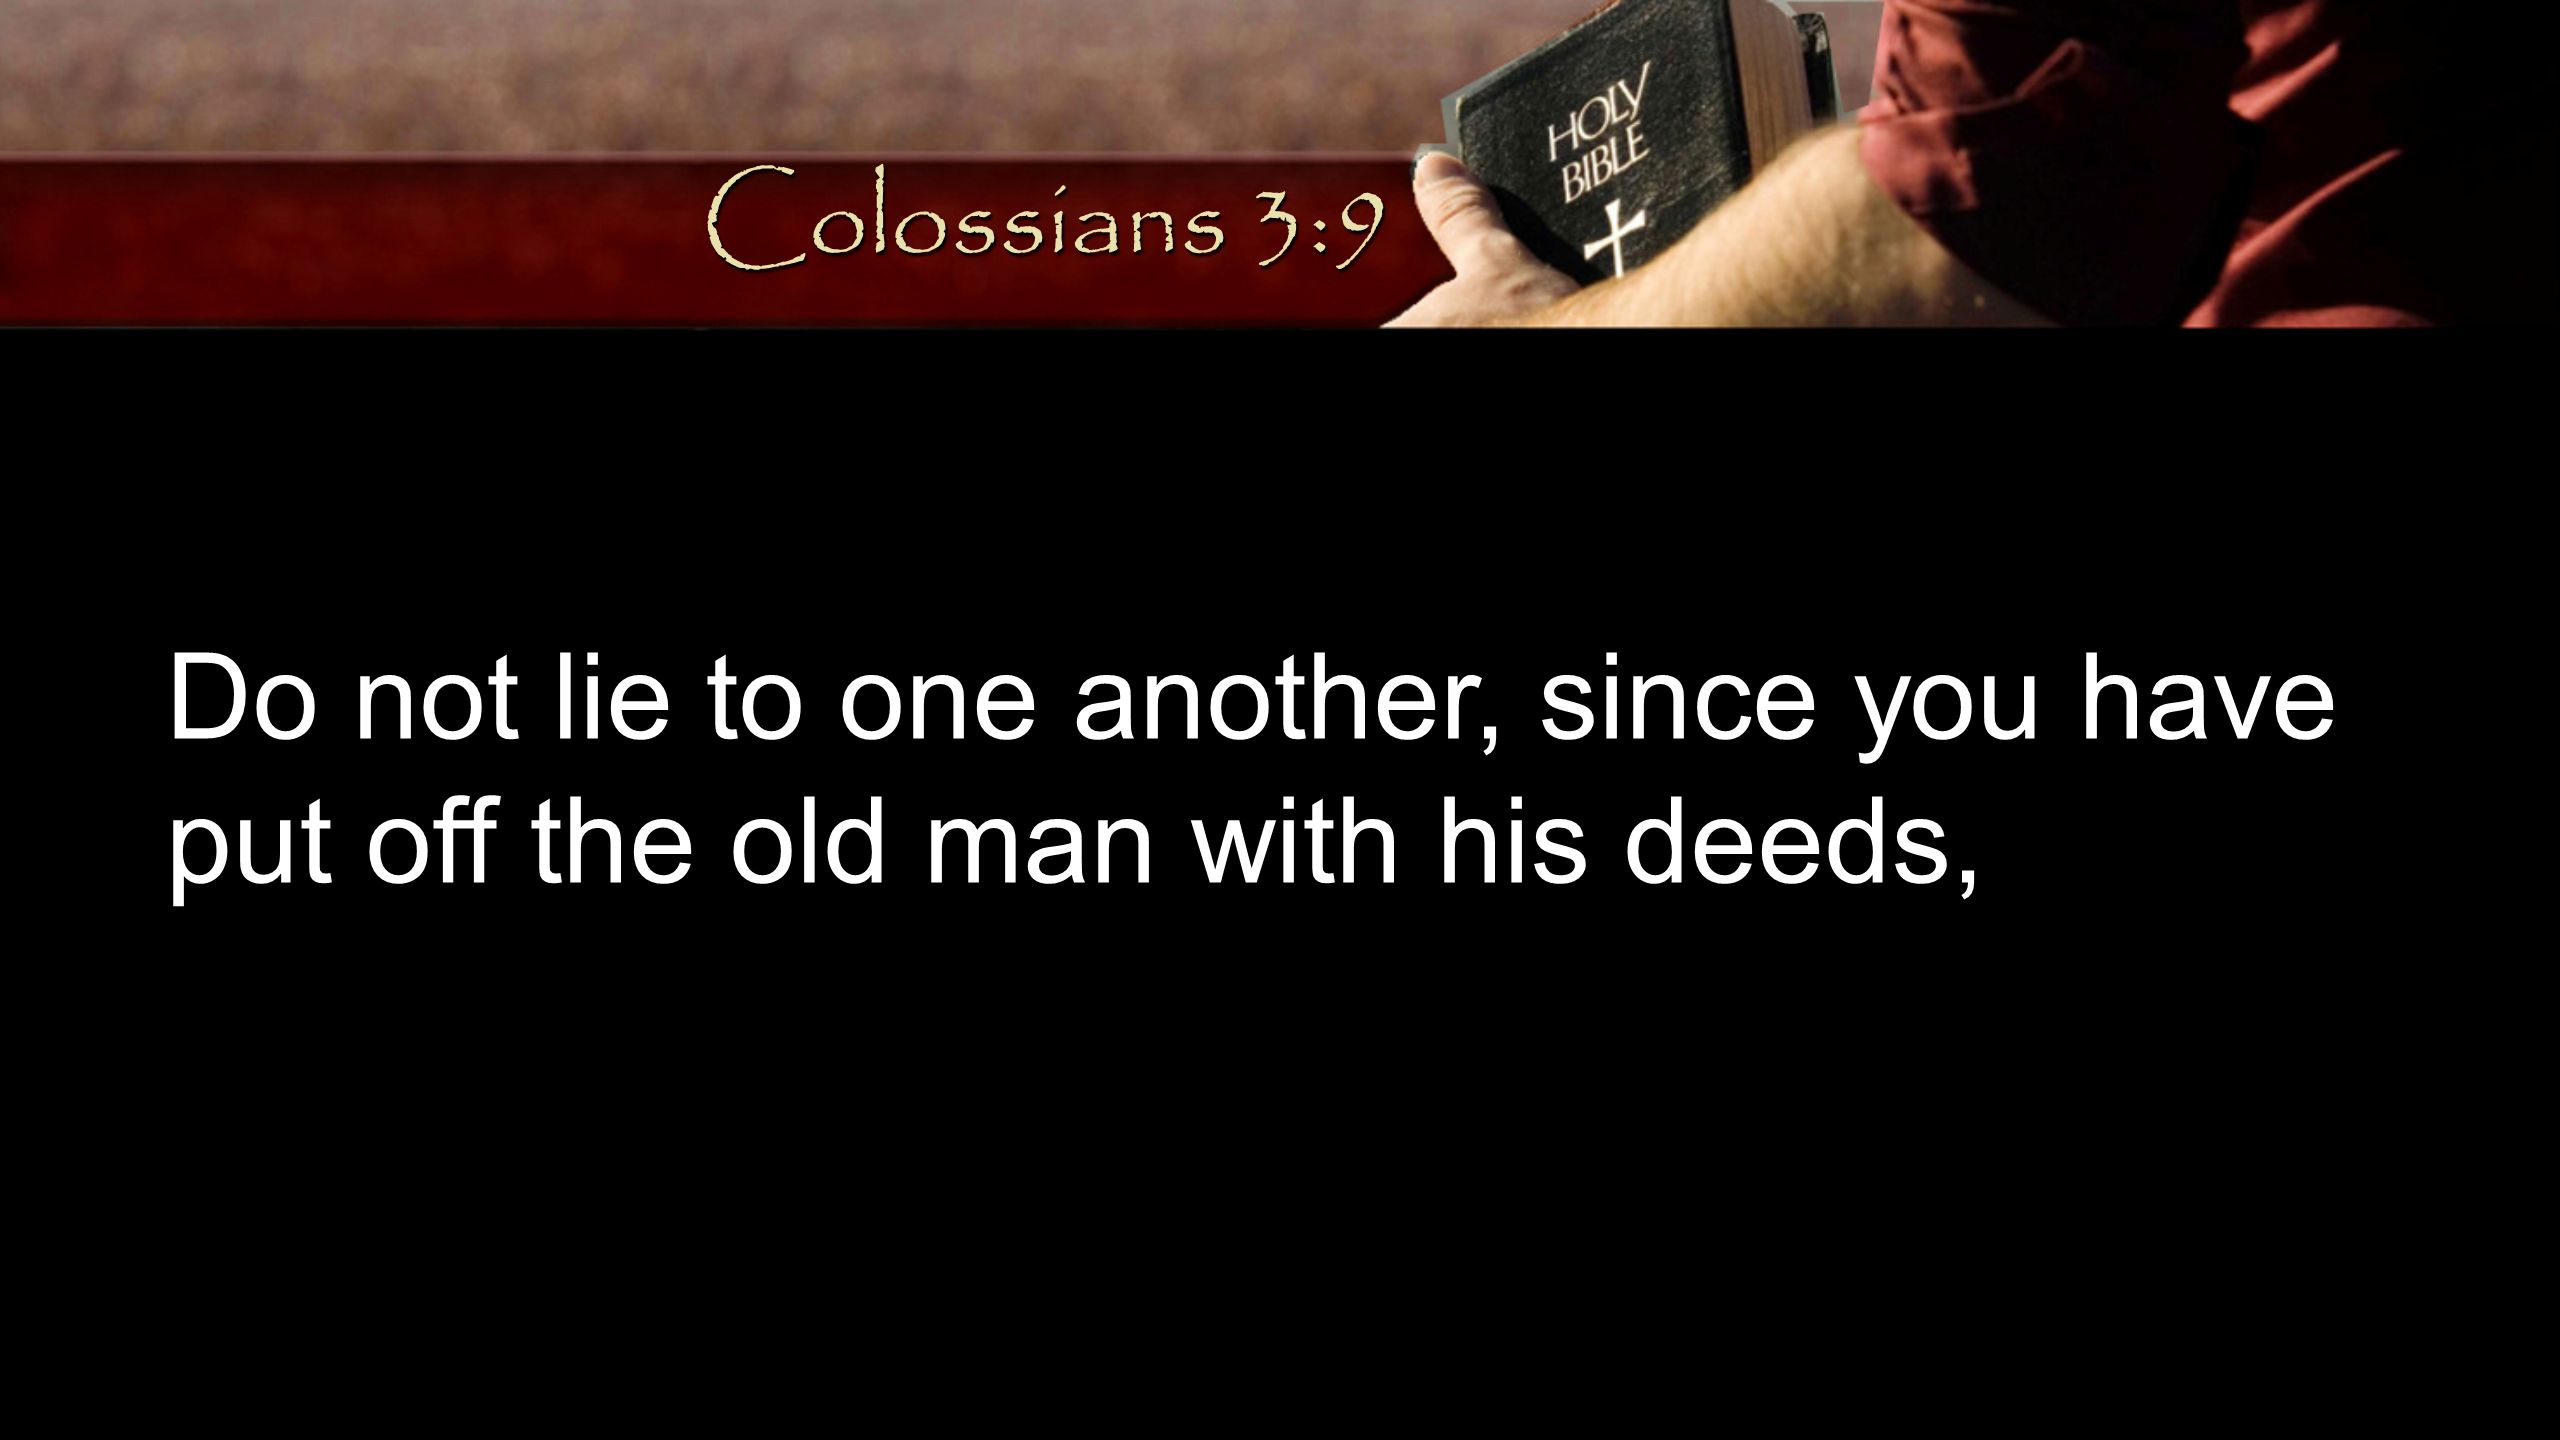 Colossians 3:9 Do not lie to one another, since you have put off the old man with his deeds,